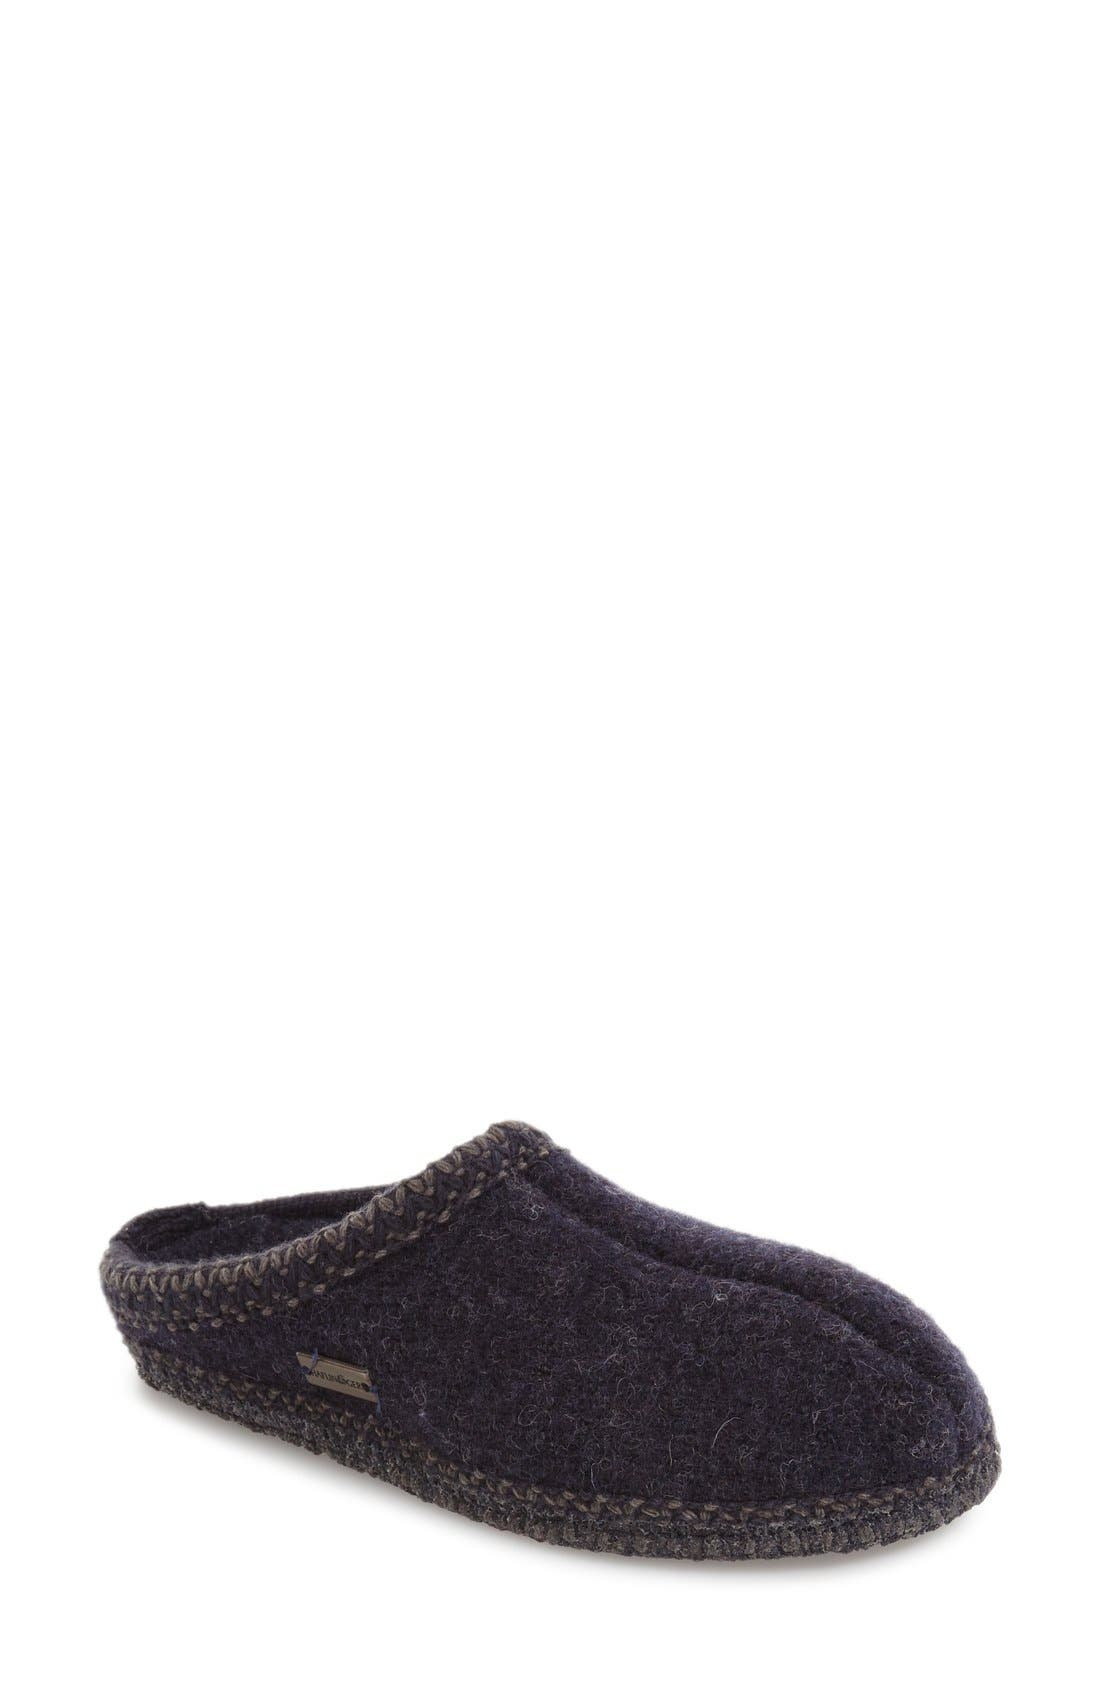 'Classic' Slipper,                         Main,                         color, Navy Wool